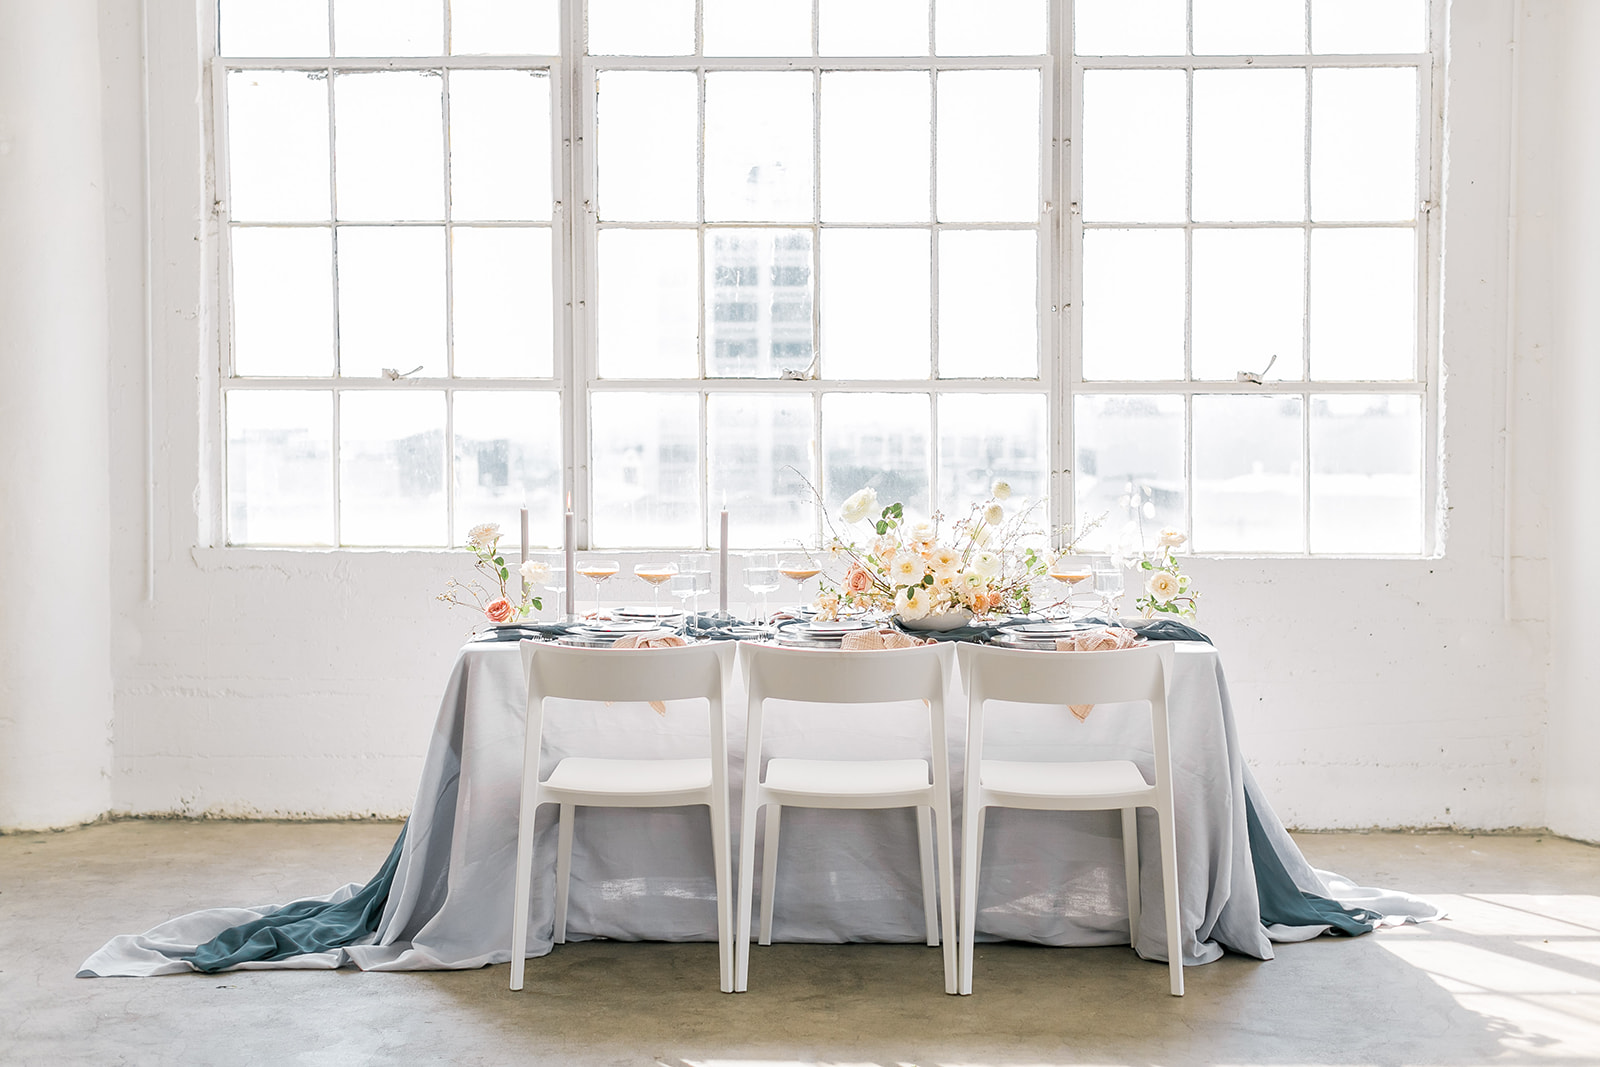 Modern wedding table design.jpg